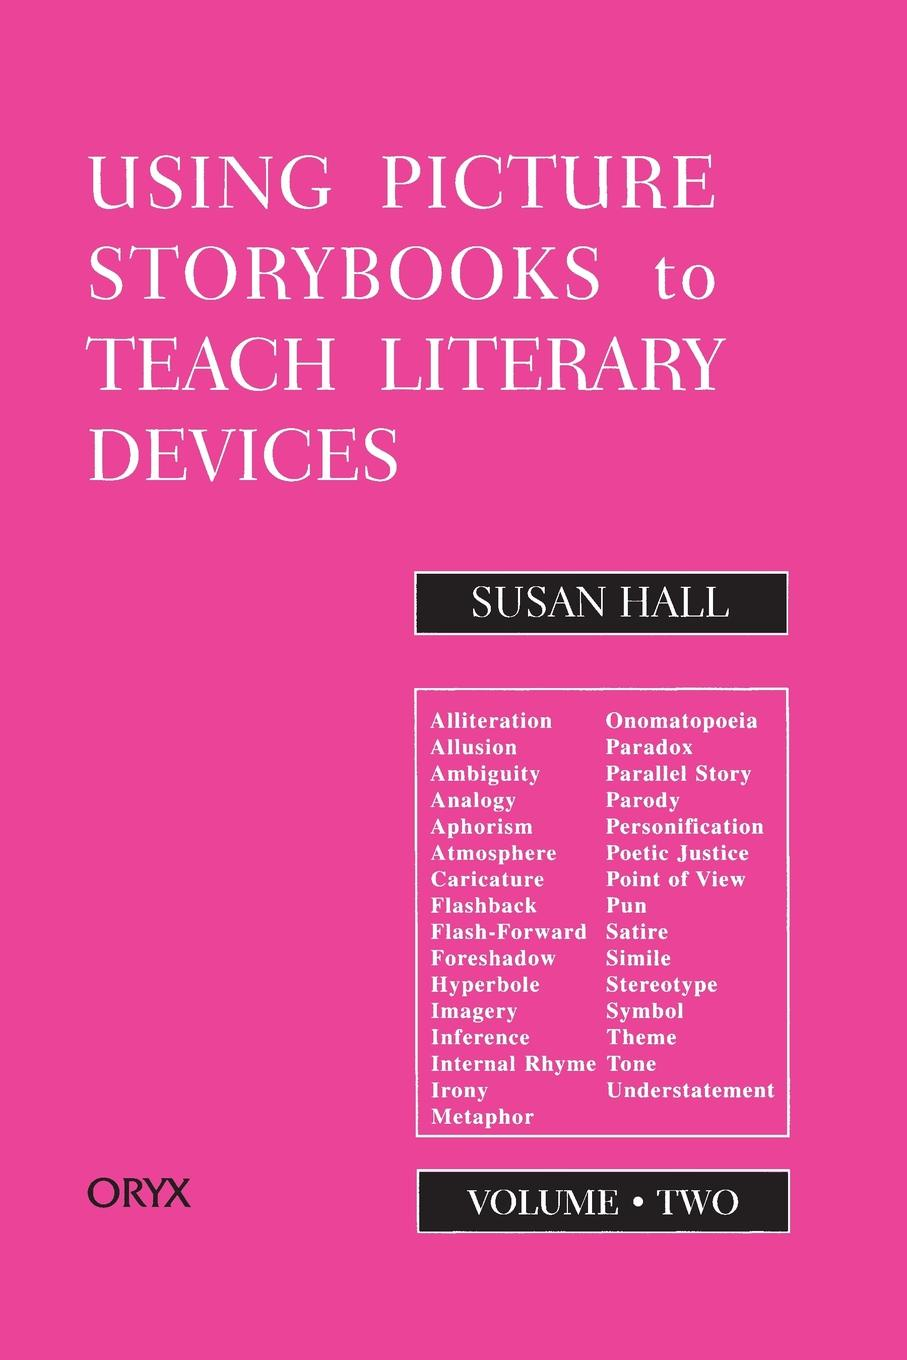 Susan Hall Using Picture Storybooks to Teach Literary Devices. Recommended Books for Children and Young Adults c storybooks 4 special cake